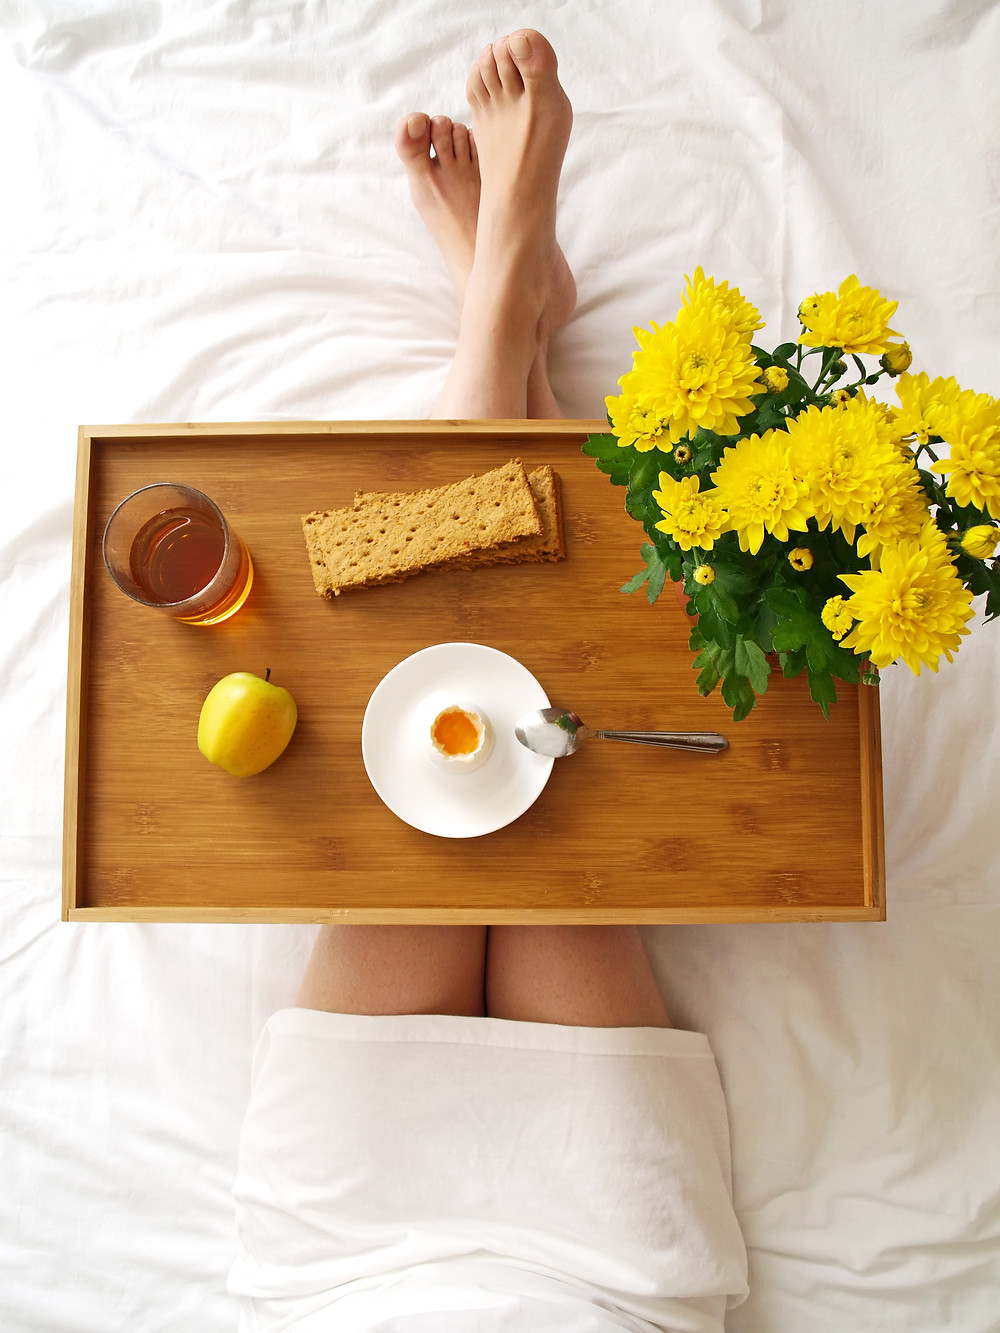 Breakfast tray on the lap of person sitting on bed. It has vase of yellow daisies, dry crackers, boiled egg, apple and cup of tea